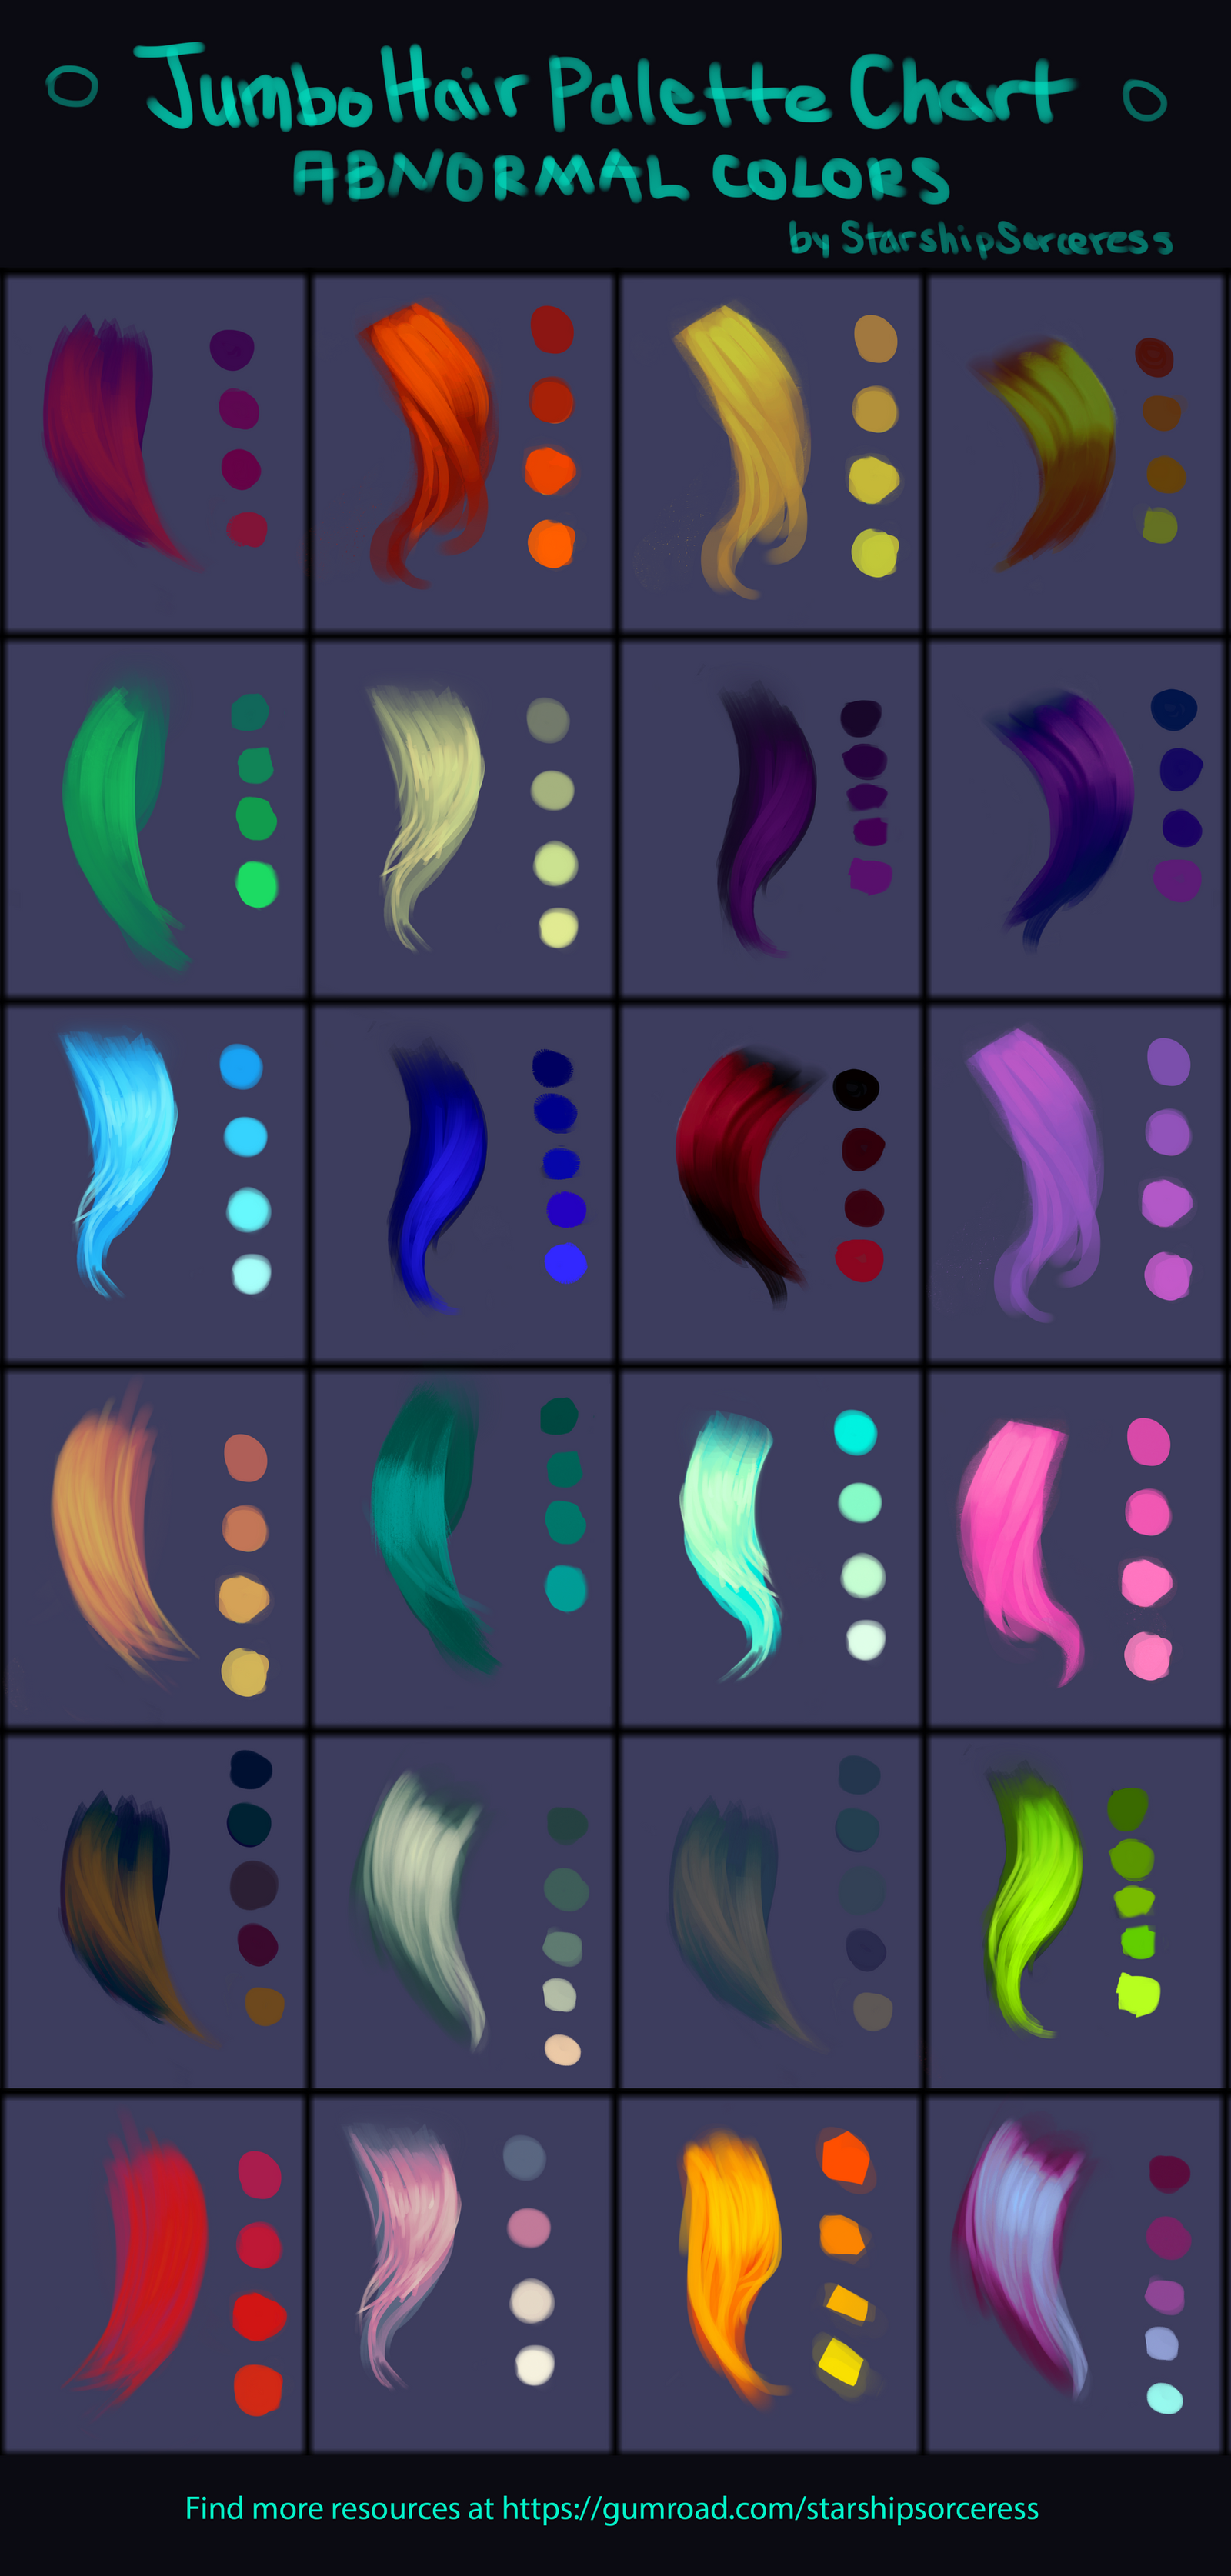 Jumbo Abnormal Hair Palettes Chart By Starshipsorceress On